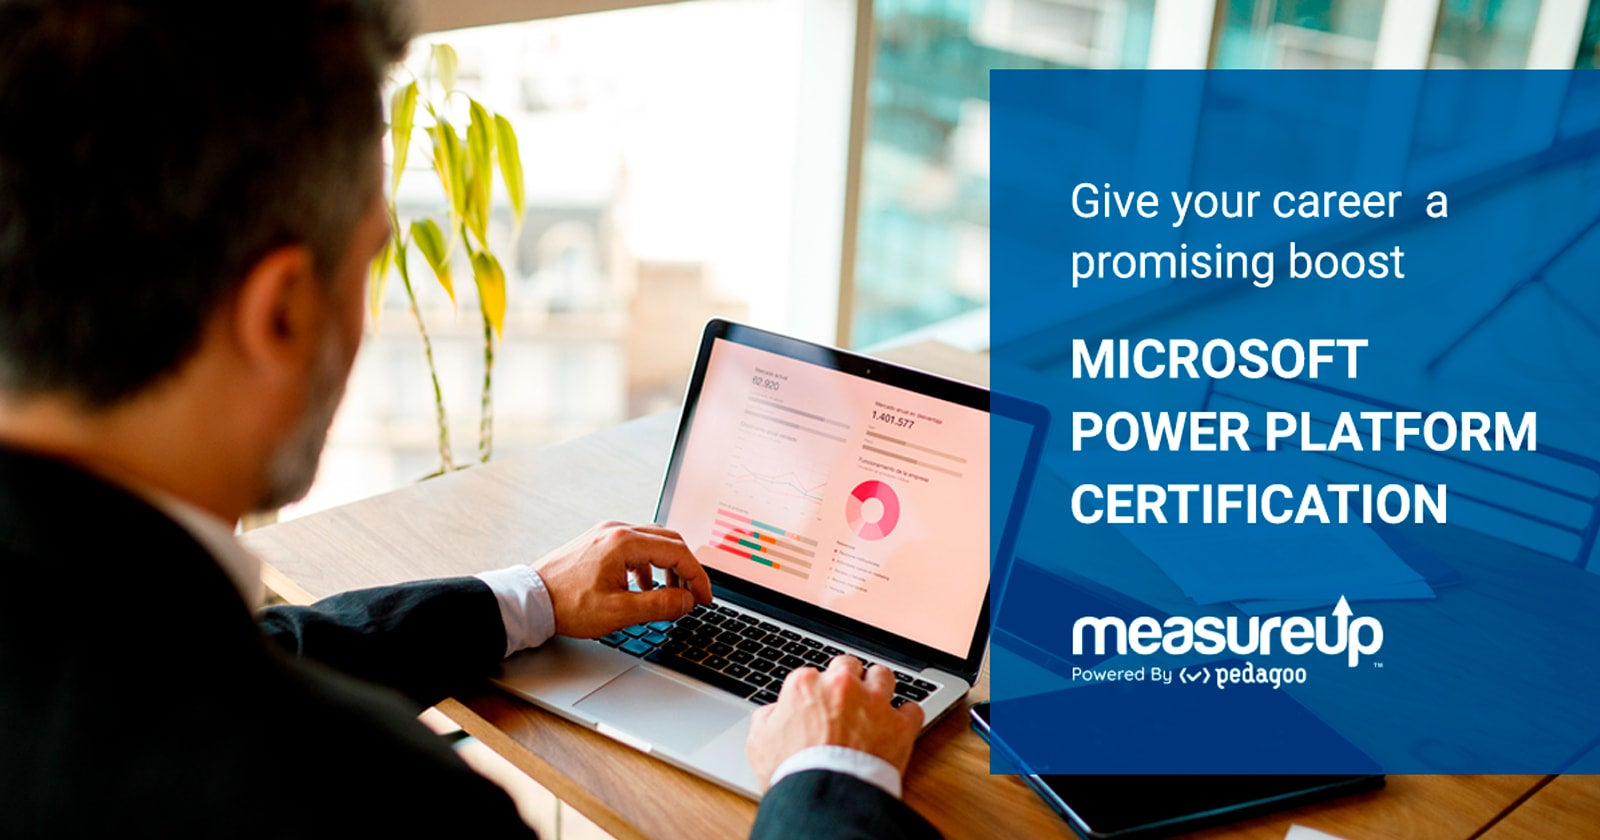 Microsoft Power Platform certification: Start your training!